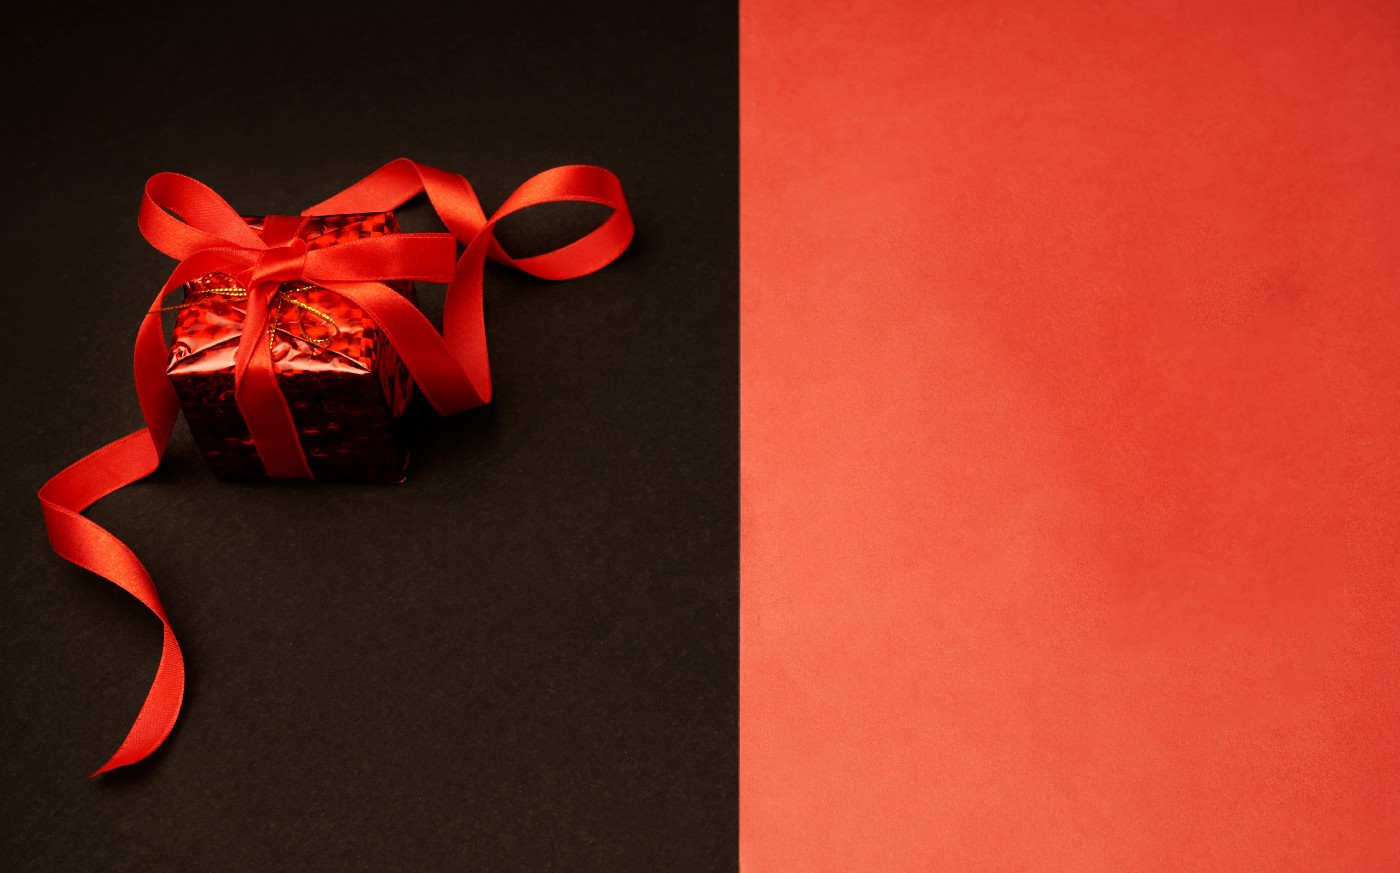 gift box wrapped in red paper with a red ribbon